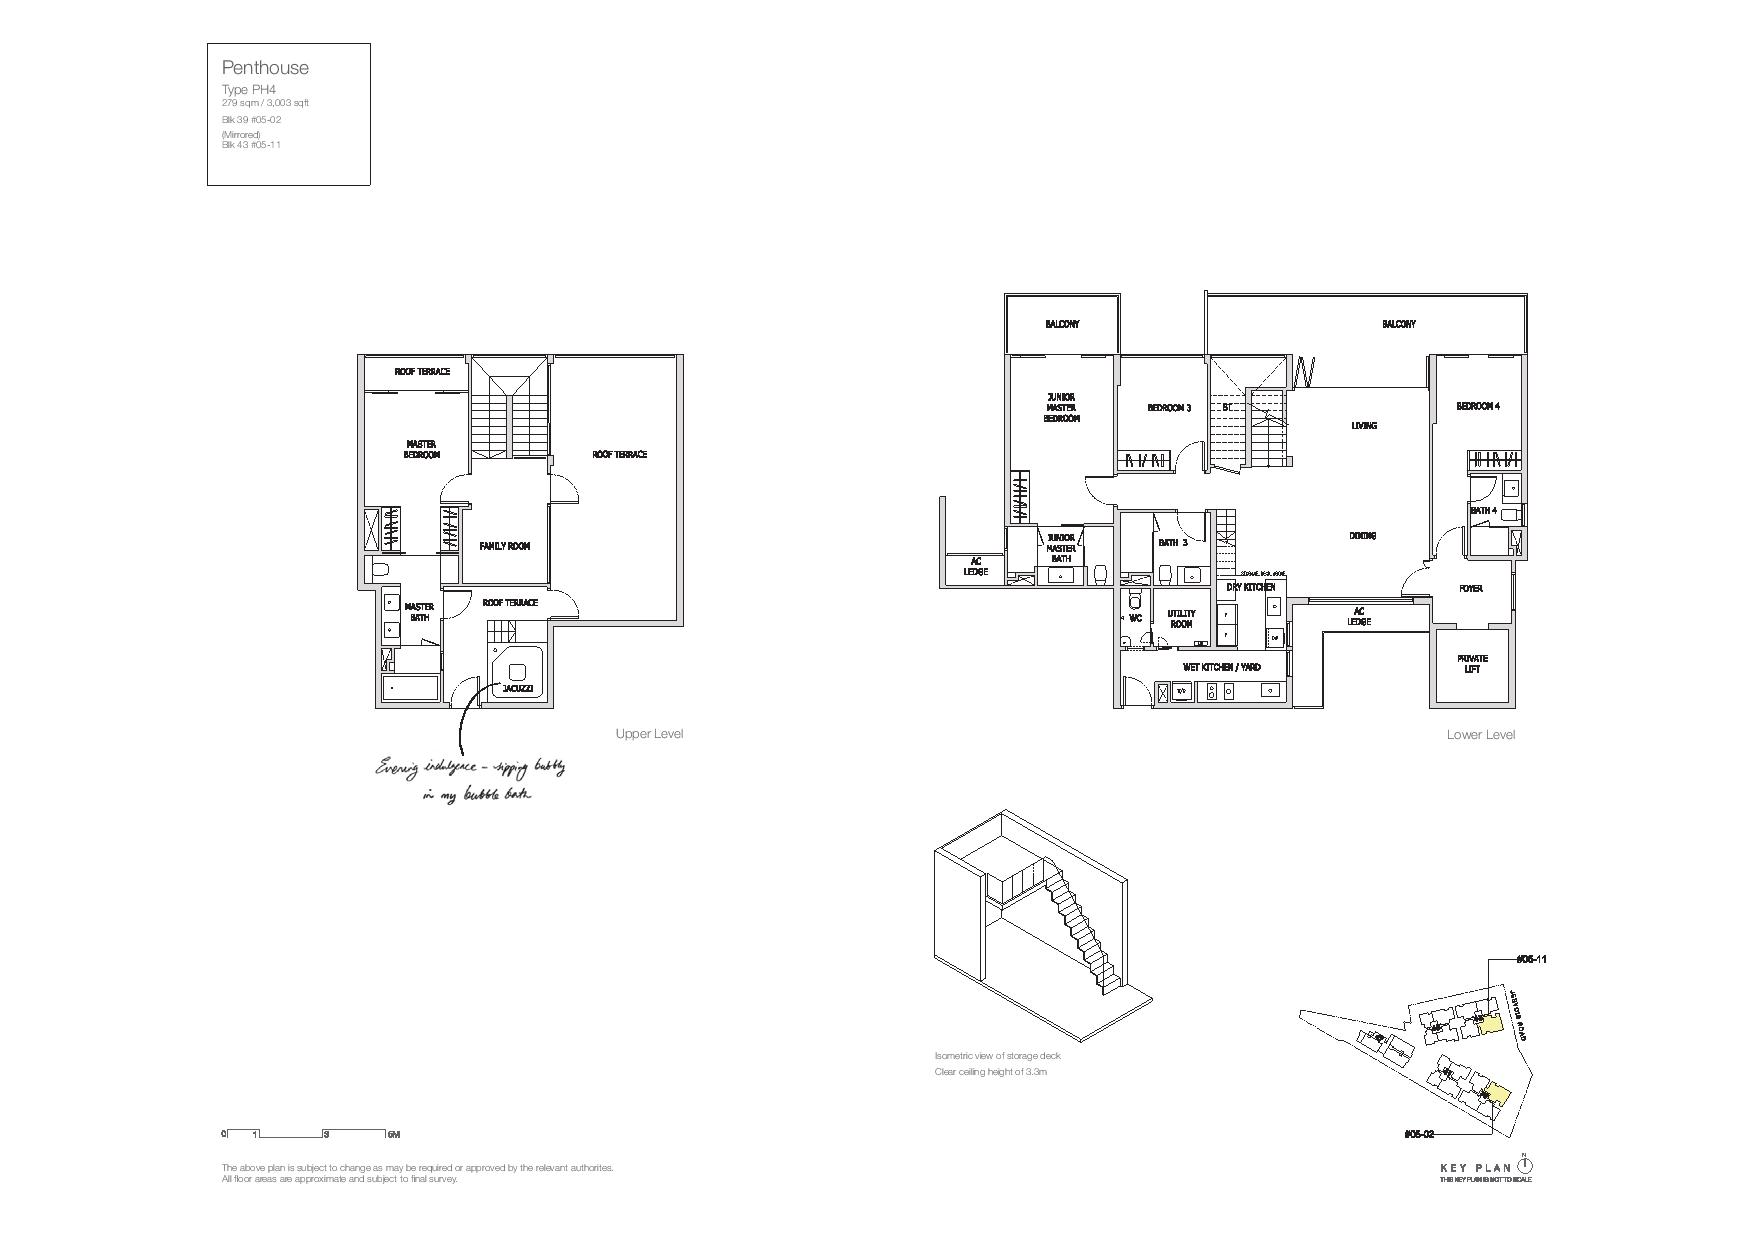 Mon Jervois Penthouse Floor Plans Type PH4